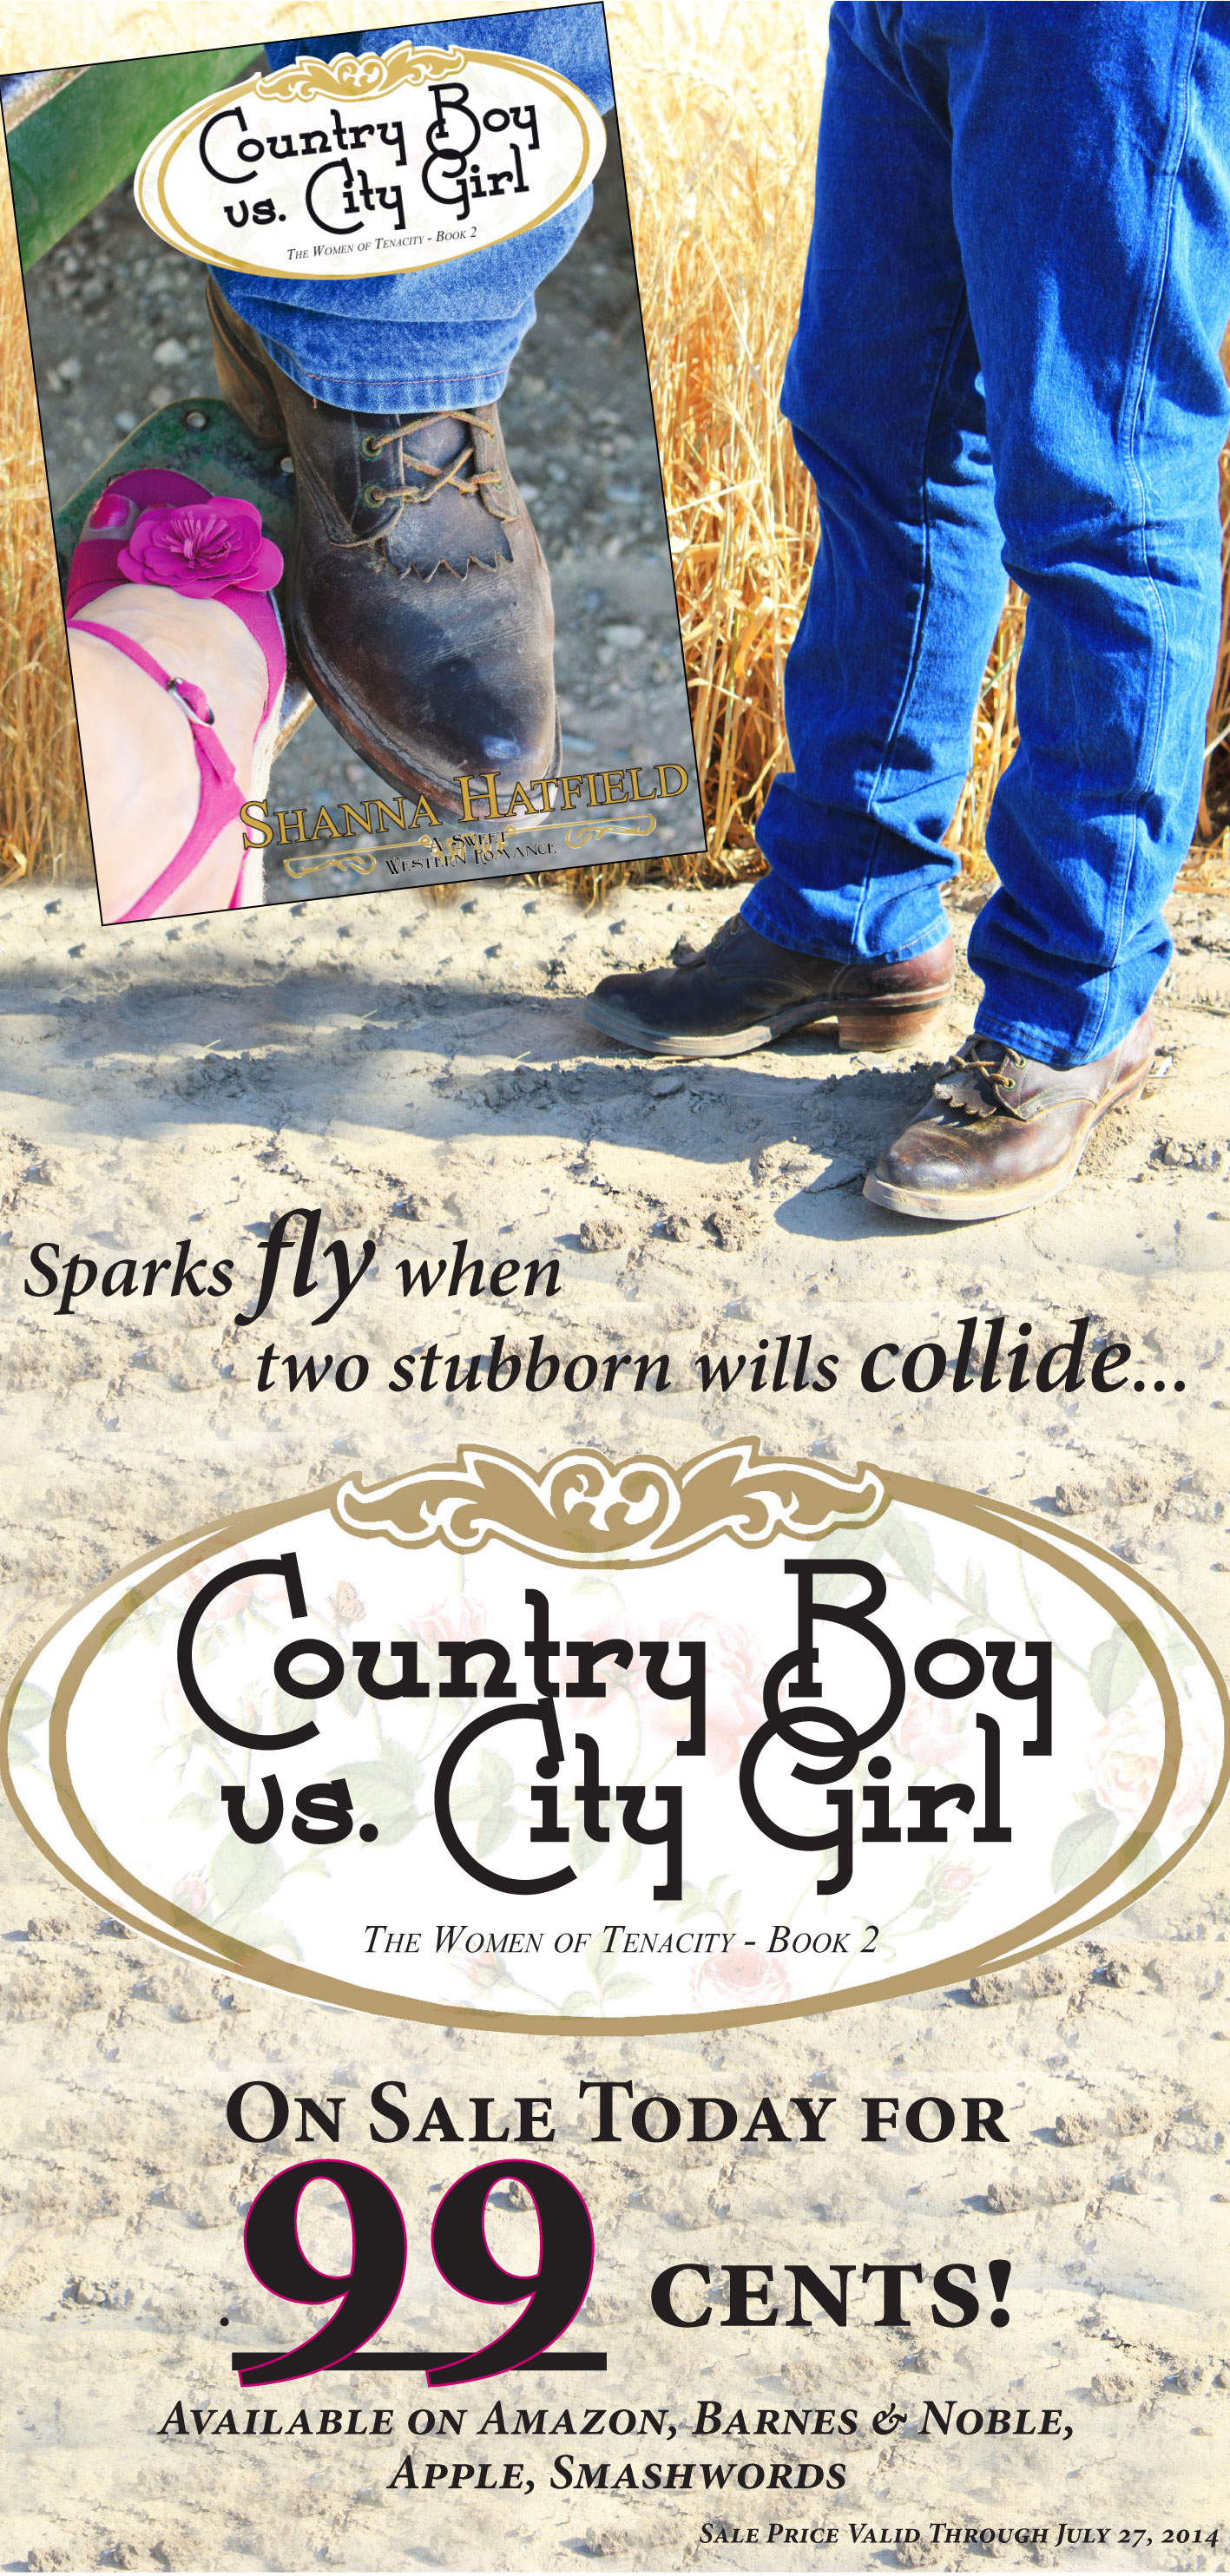 Country boy dating city girl